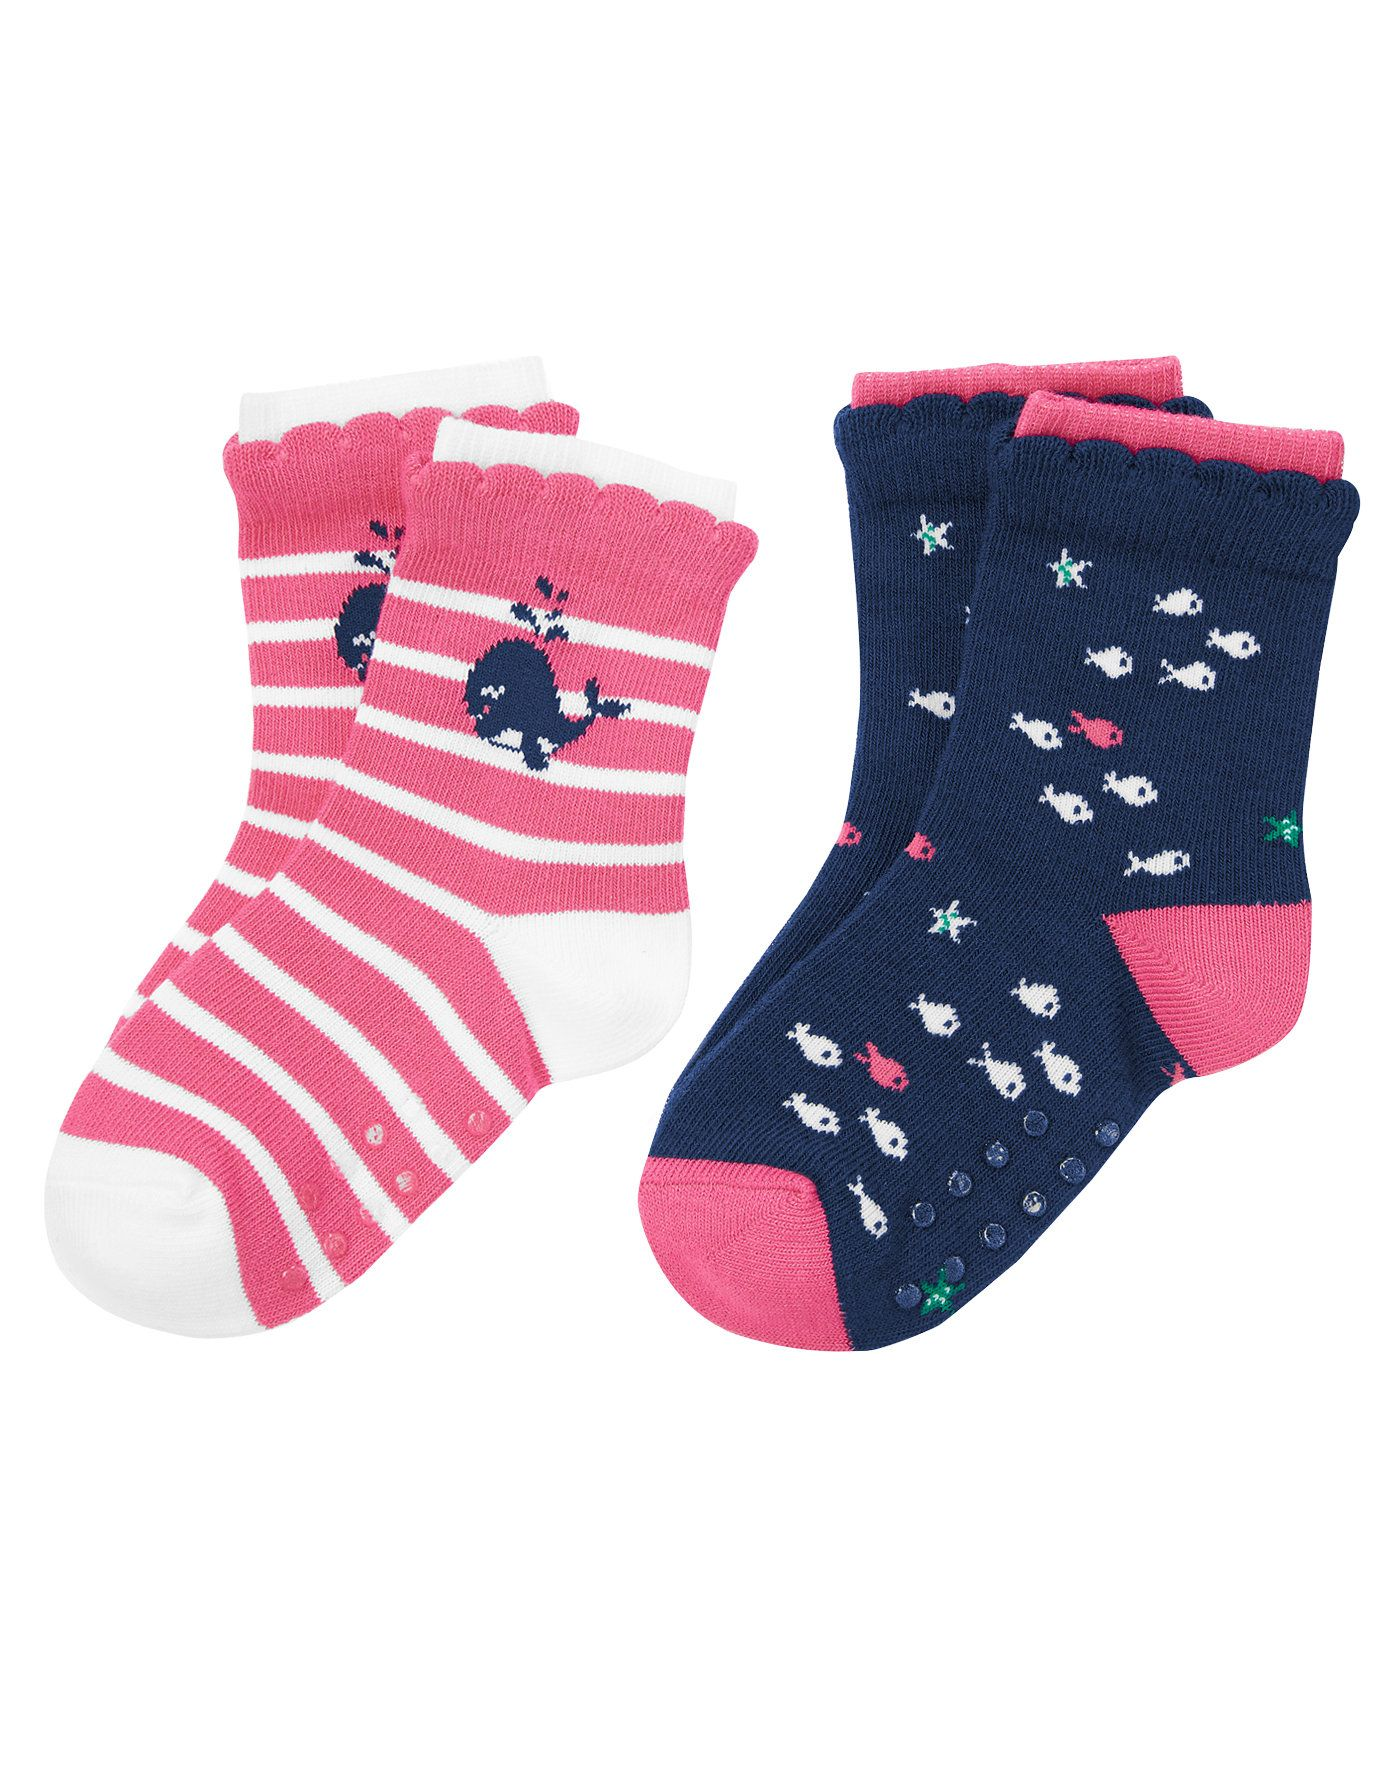 Finish her spring looks with cute and coordinating nautical socks